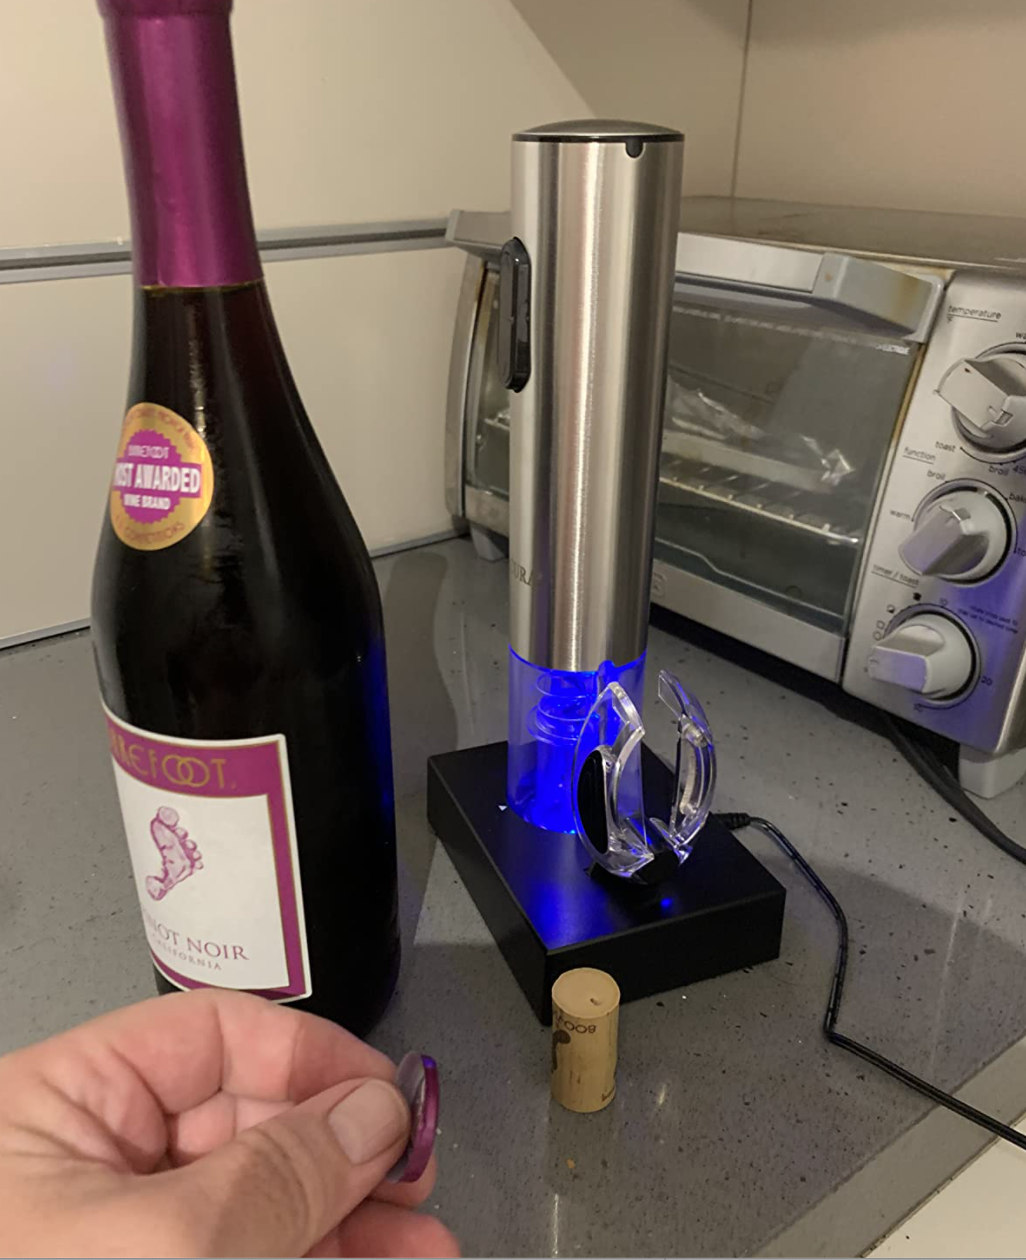 reviewer image of cylinder shaped blue lit opener on black base next to an uncorked wine bottle